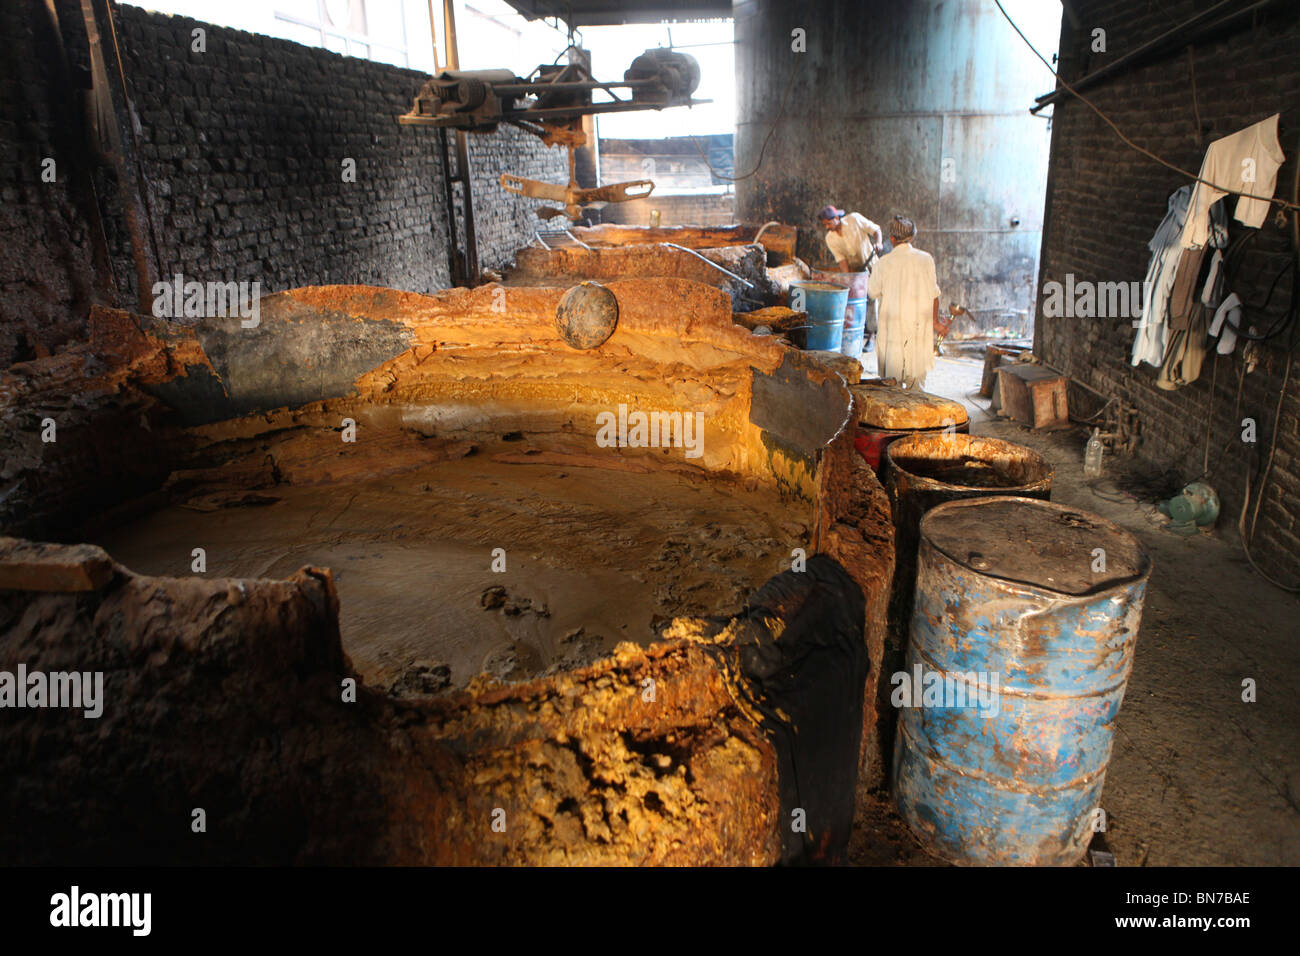 Soap factory in islamabad, Pakistan Stock Photo: 30280726 - Alamy